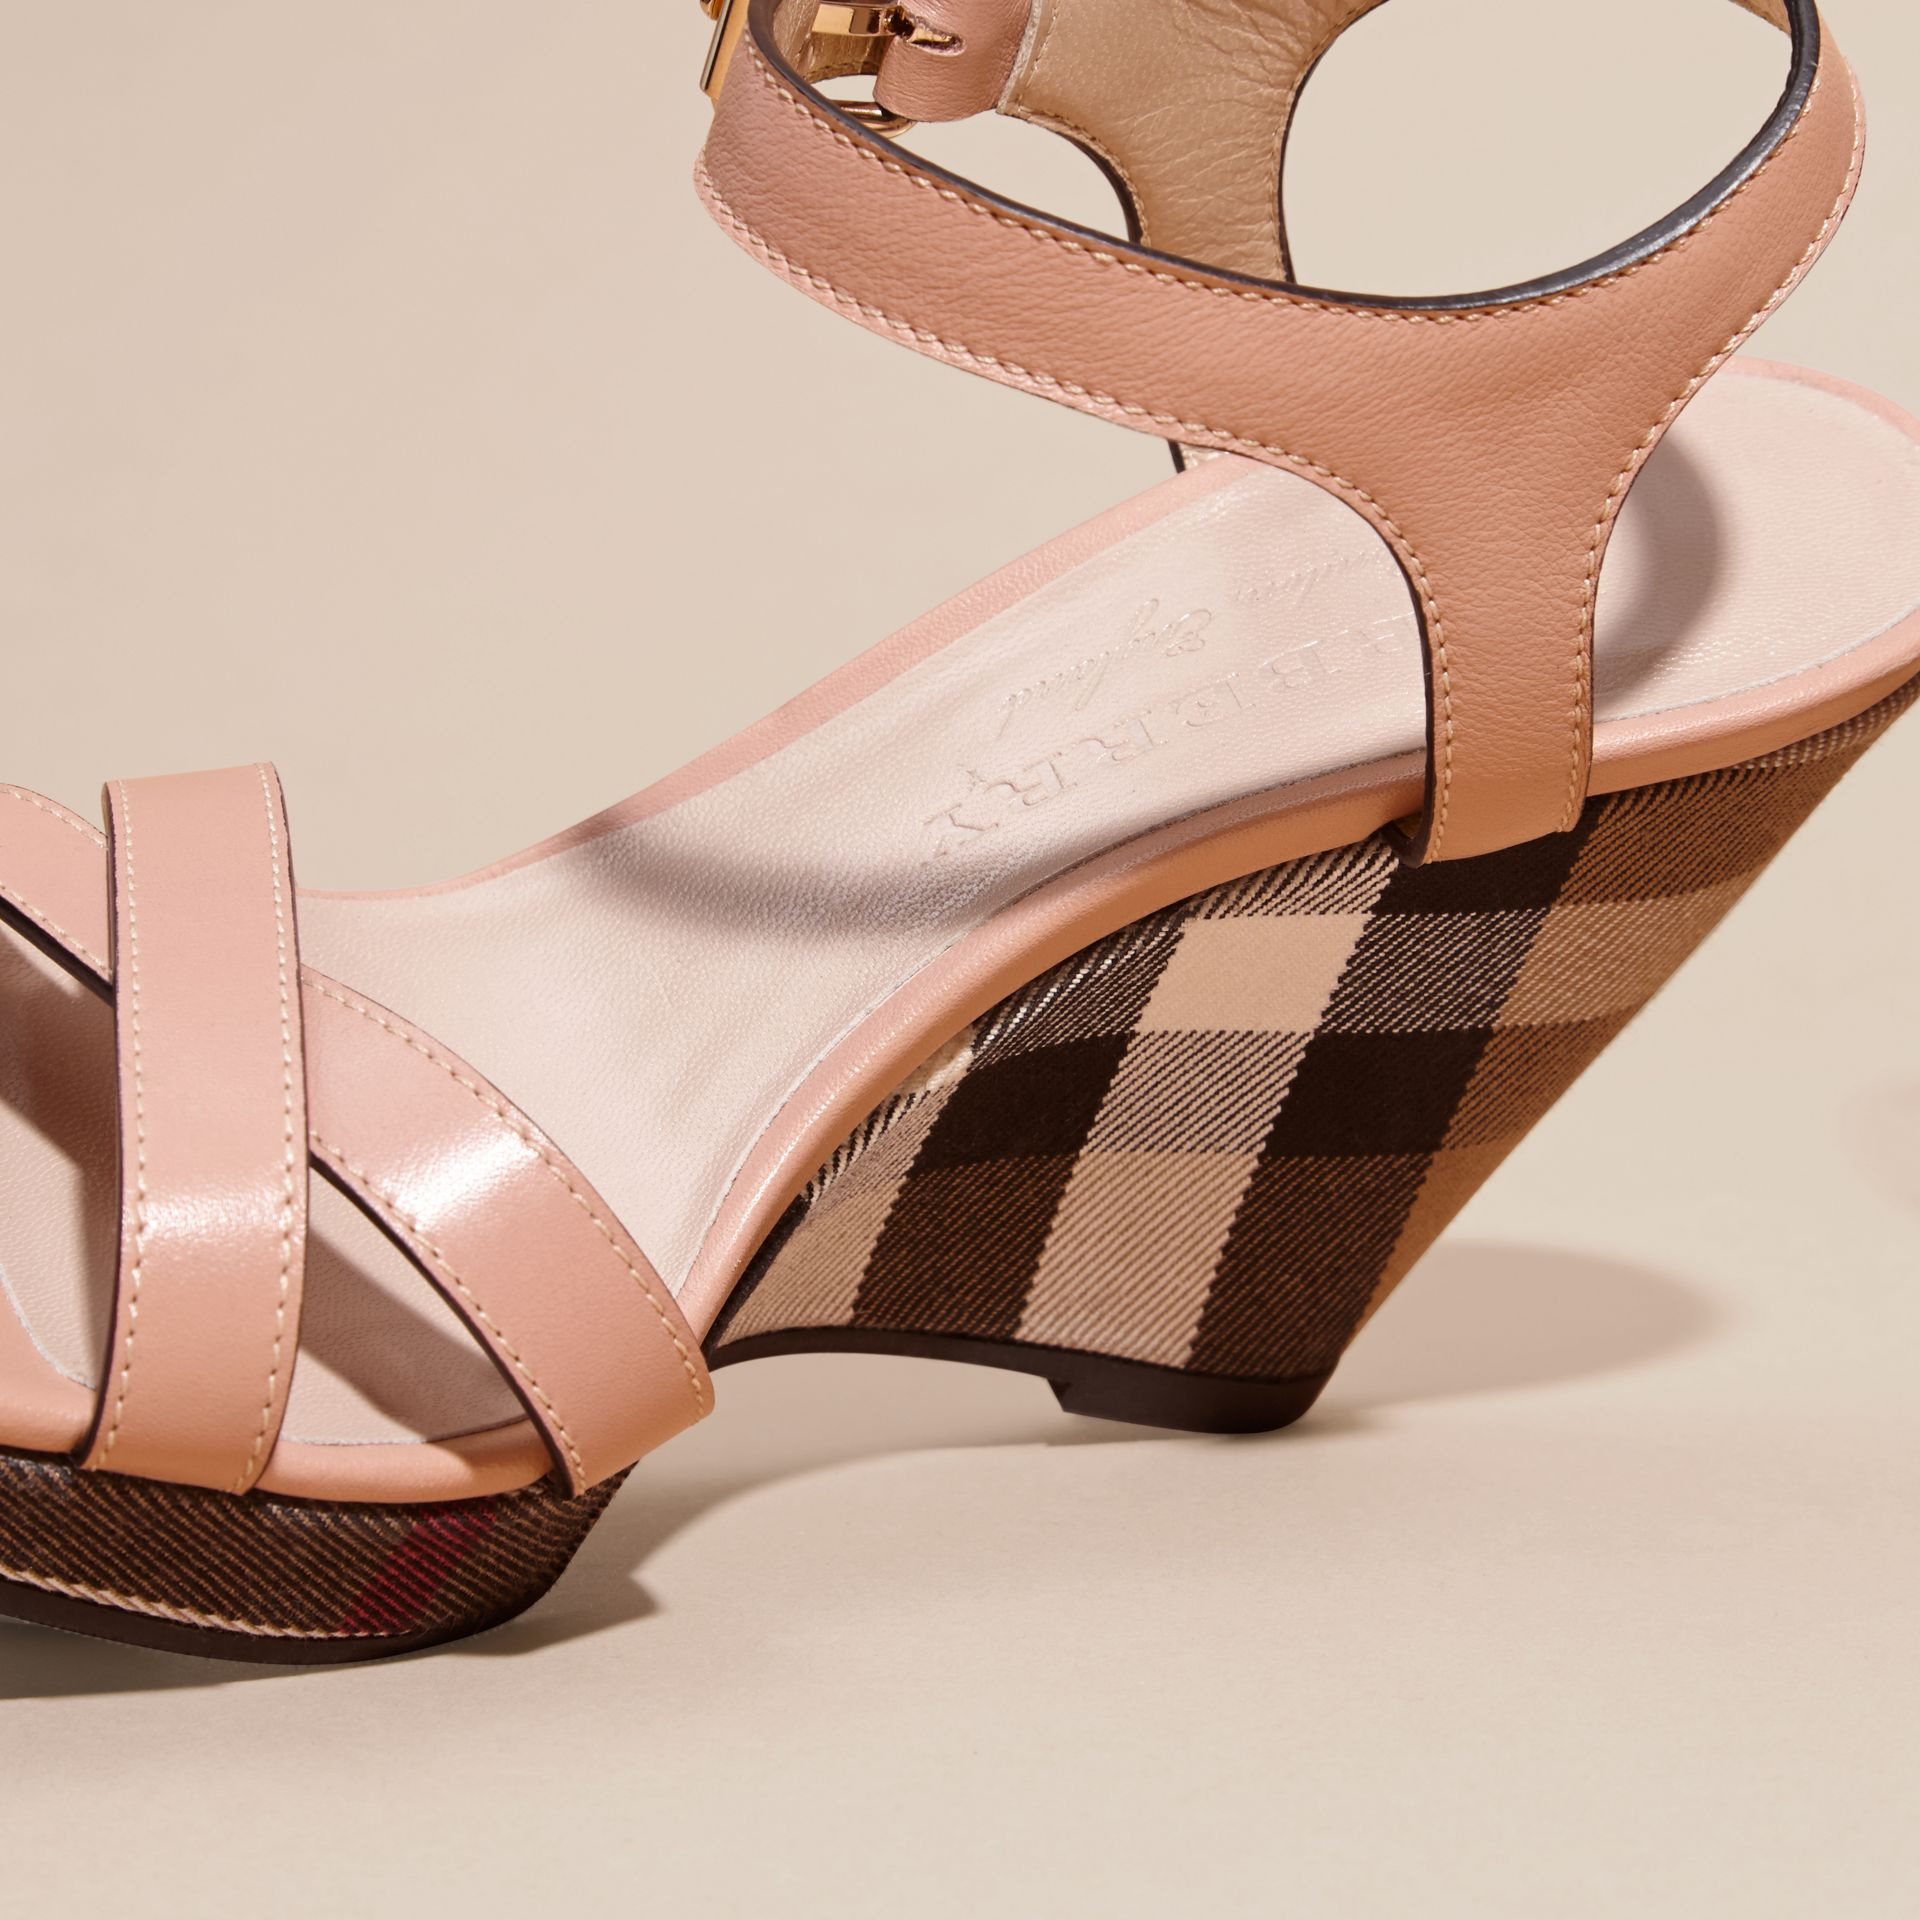 House Check Detail Leather Wedge Sandals in Nude Blush - Women | Burberry United States - gallery image 5